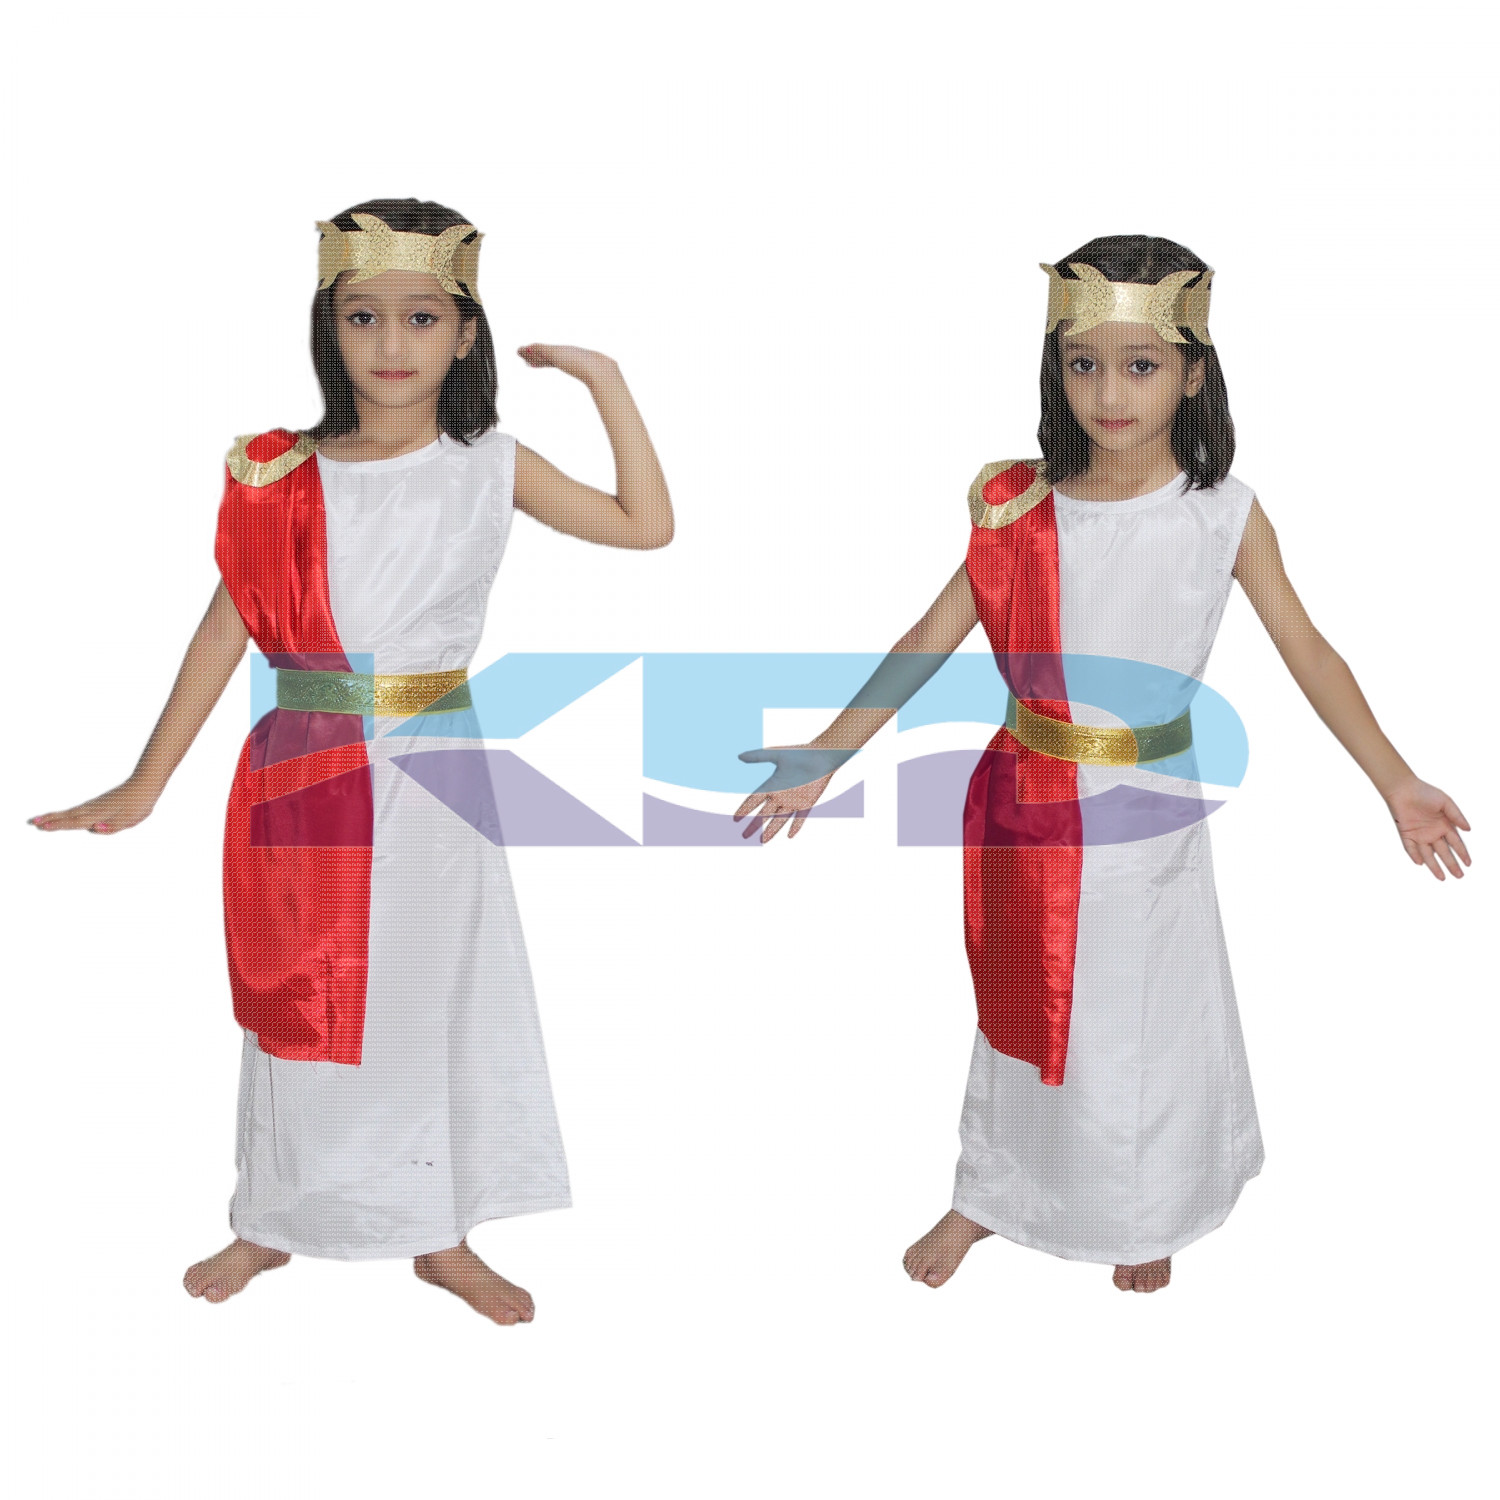 Egyptian Queen Cleopatra Costume Of International Traditional Wear For School Annual function/Theme Party/Competition/Stage Shows/Birthday Party Dress